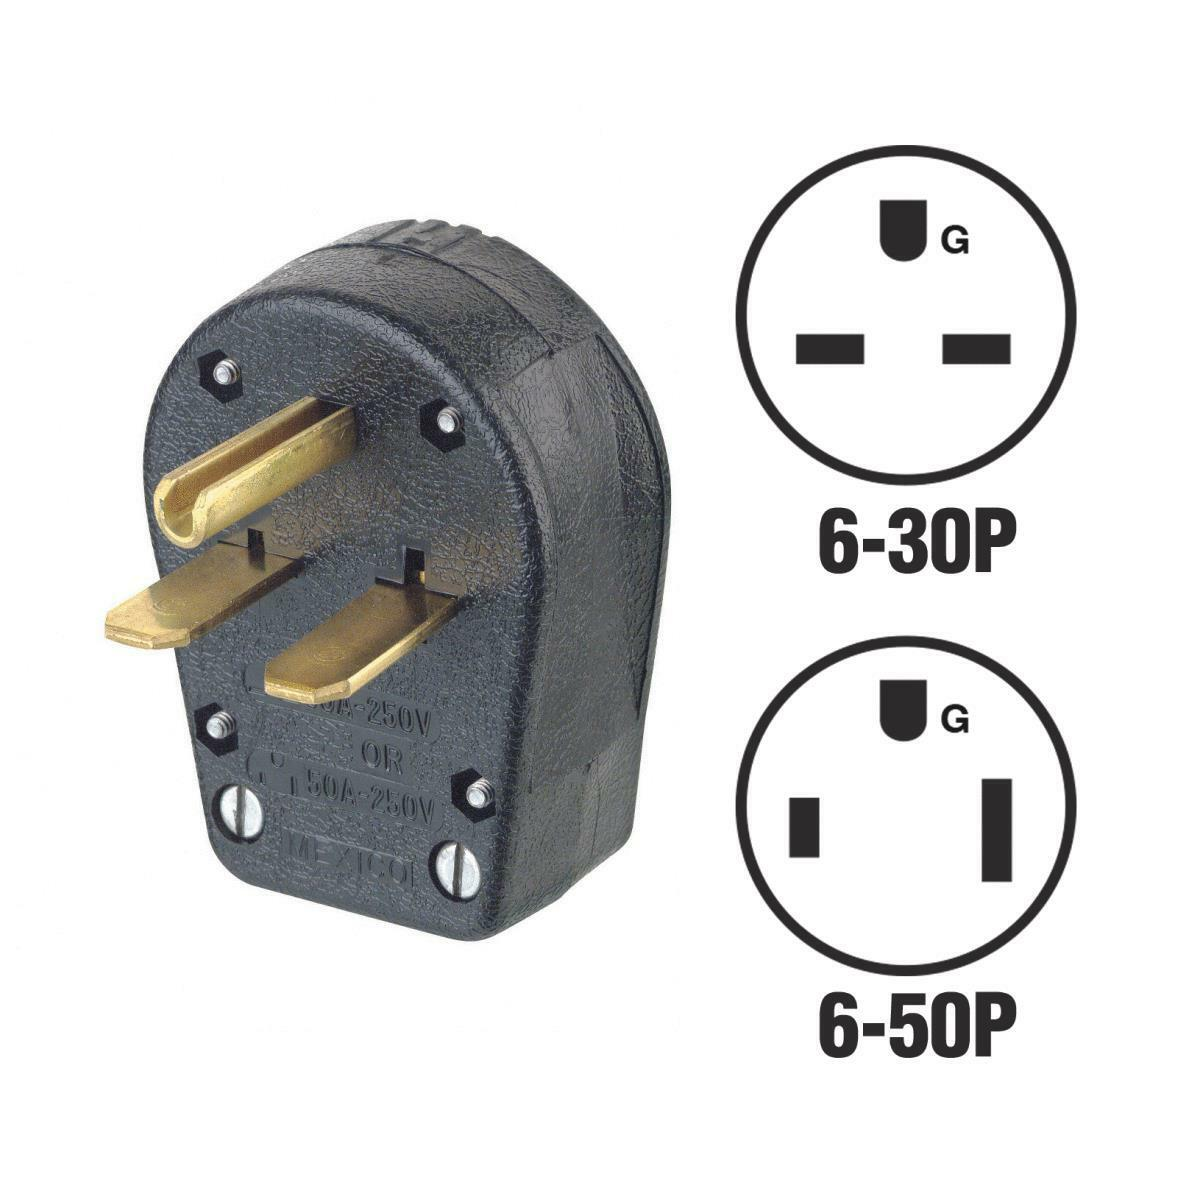 Leviton Dual Electric Plug 30a 50a 250v R50 931 3 Wire Has Some Extension Cord Replacement Electrical Plugs 15amp 125v Prong Ebay Norton Secured Powered By Verisign